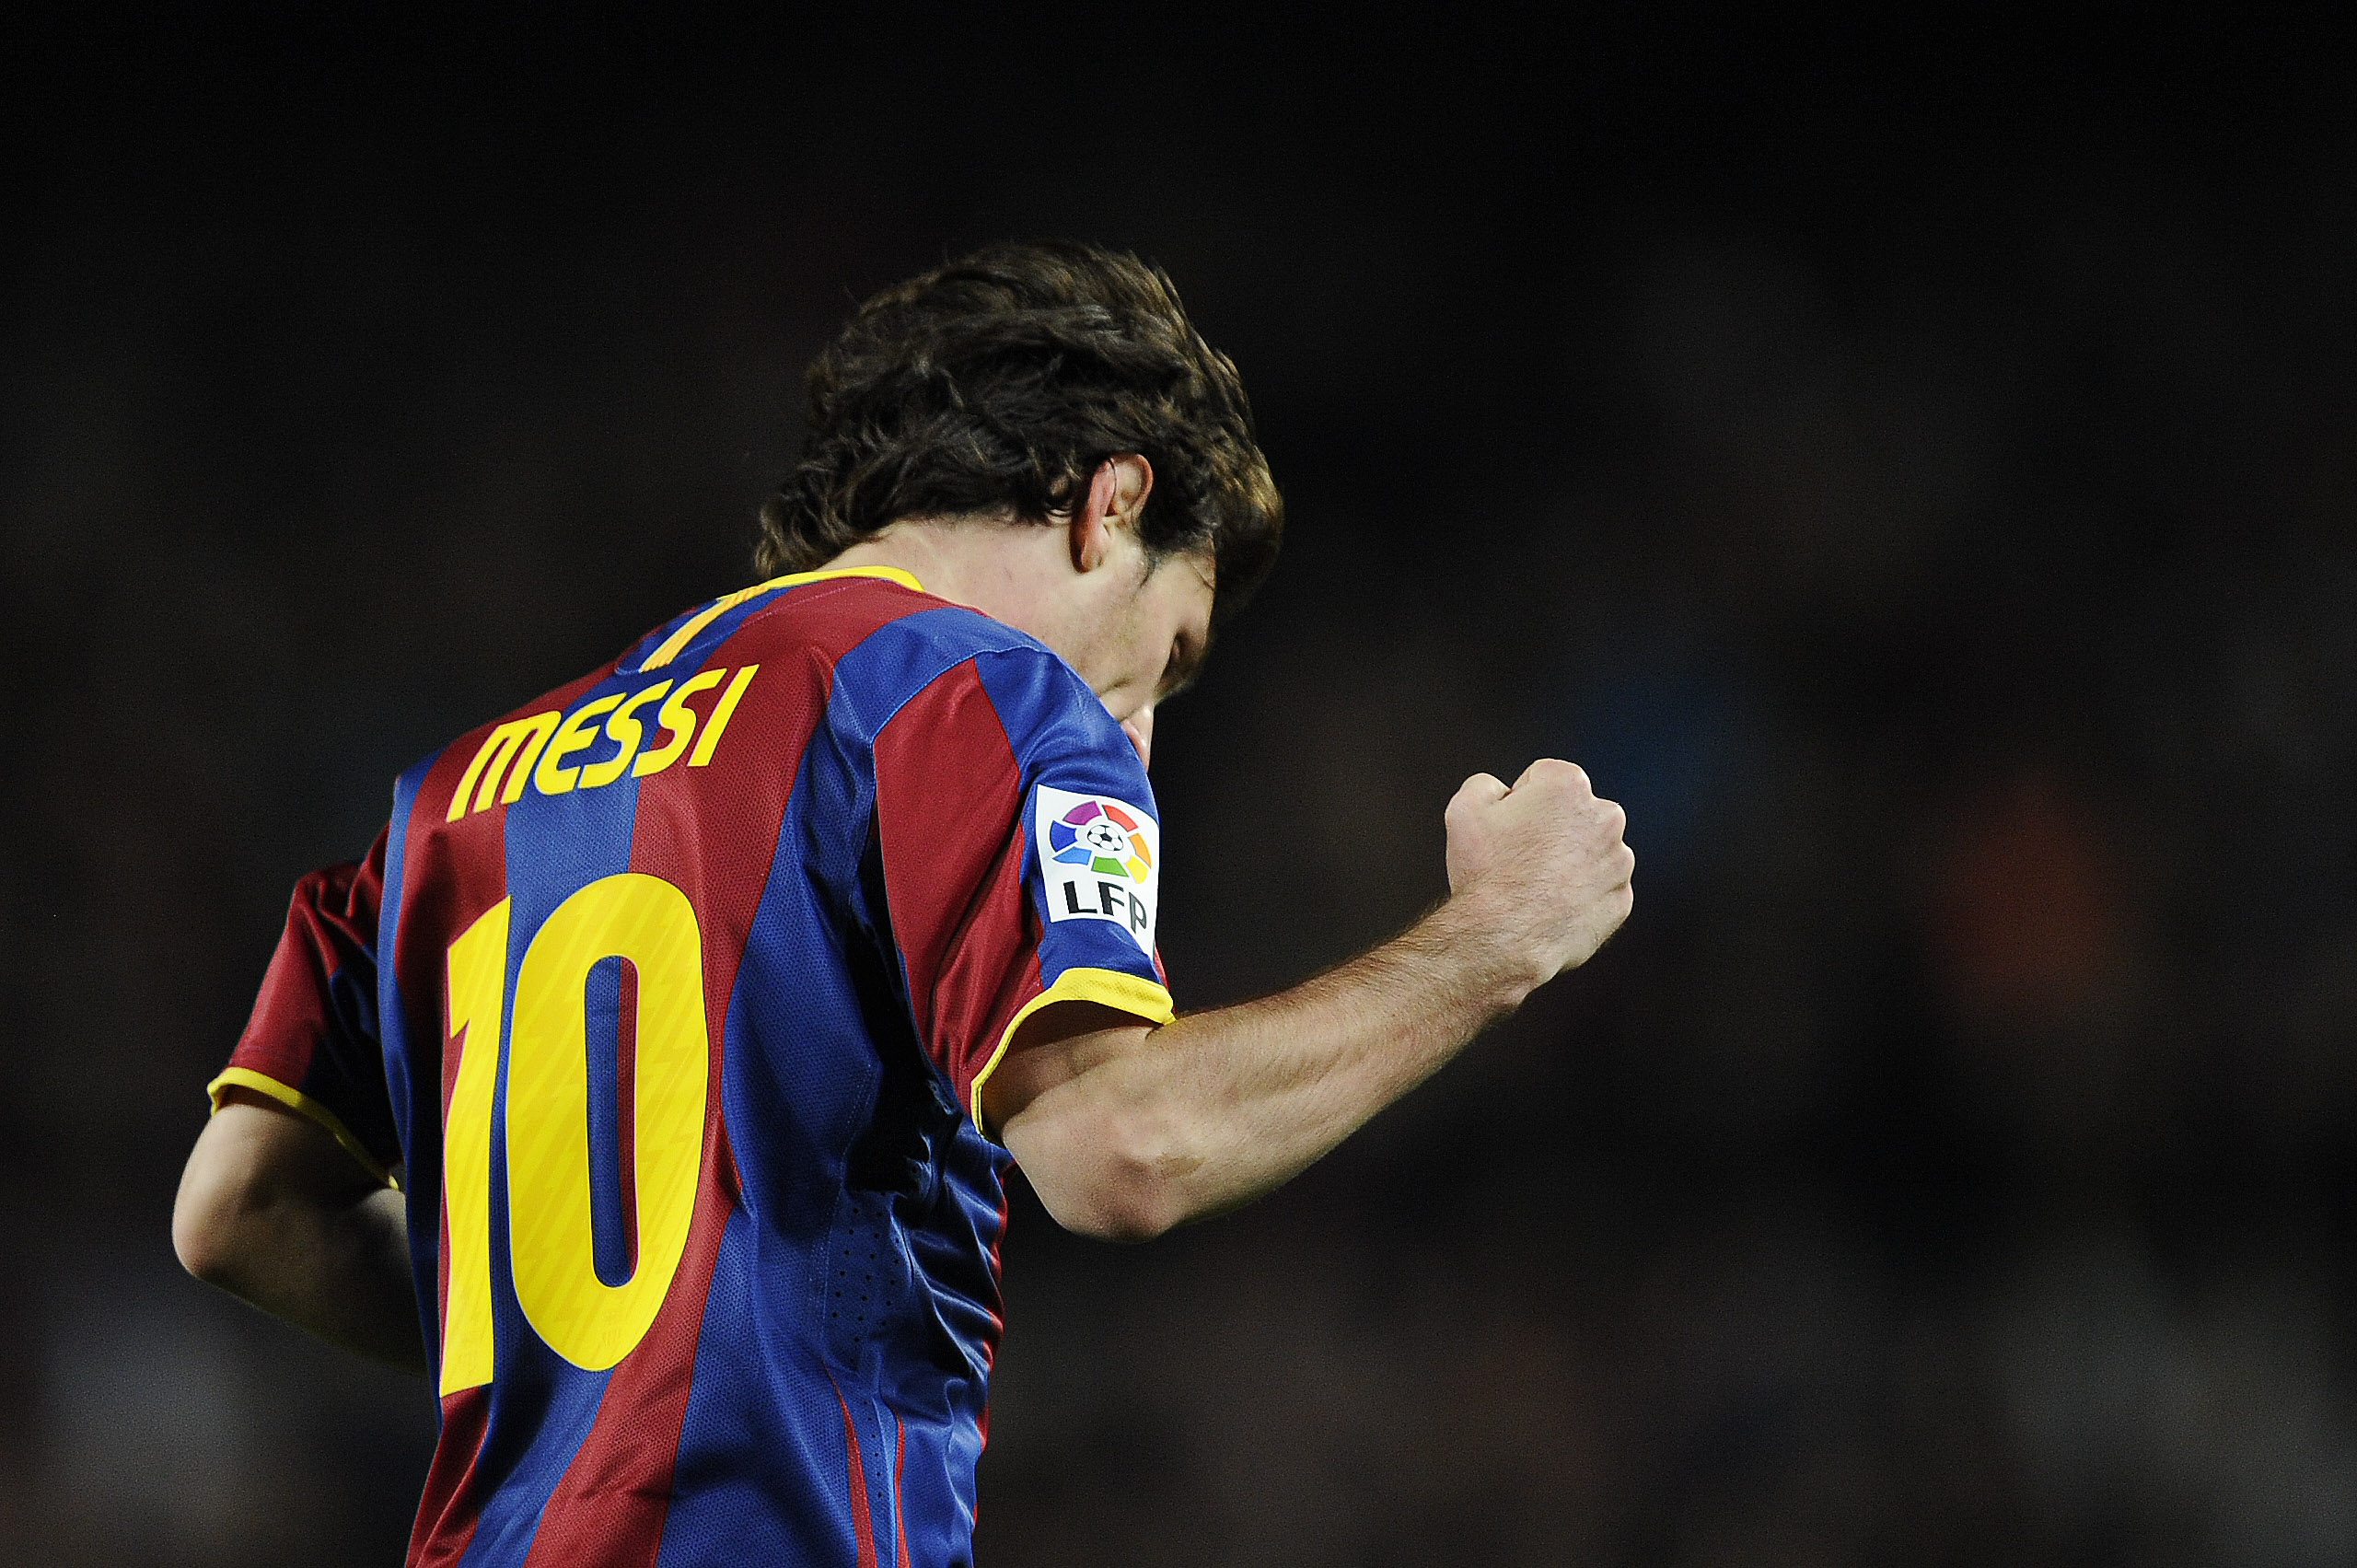 BARCELONA, SPAIN - OCTOBER 30:  Lionel Messi of Barcelona celebrates after scoring his second goal during the La Liga match between Barcelona and Sevilla FC on October 30, 2010 in Barcelona, Spain. Barcelona won the match 5-0.  (Photo by David Ramos/Getty